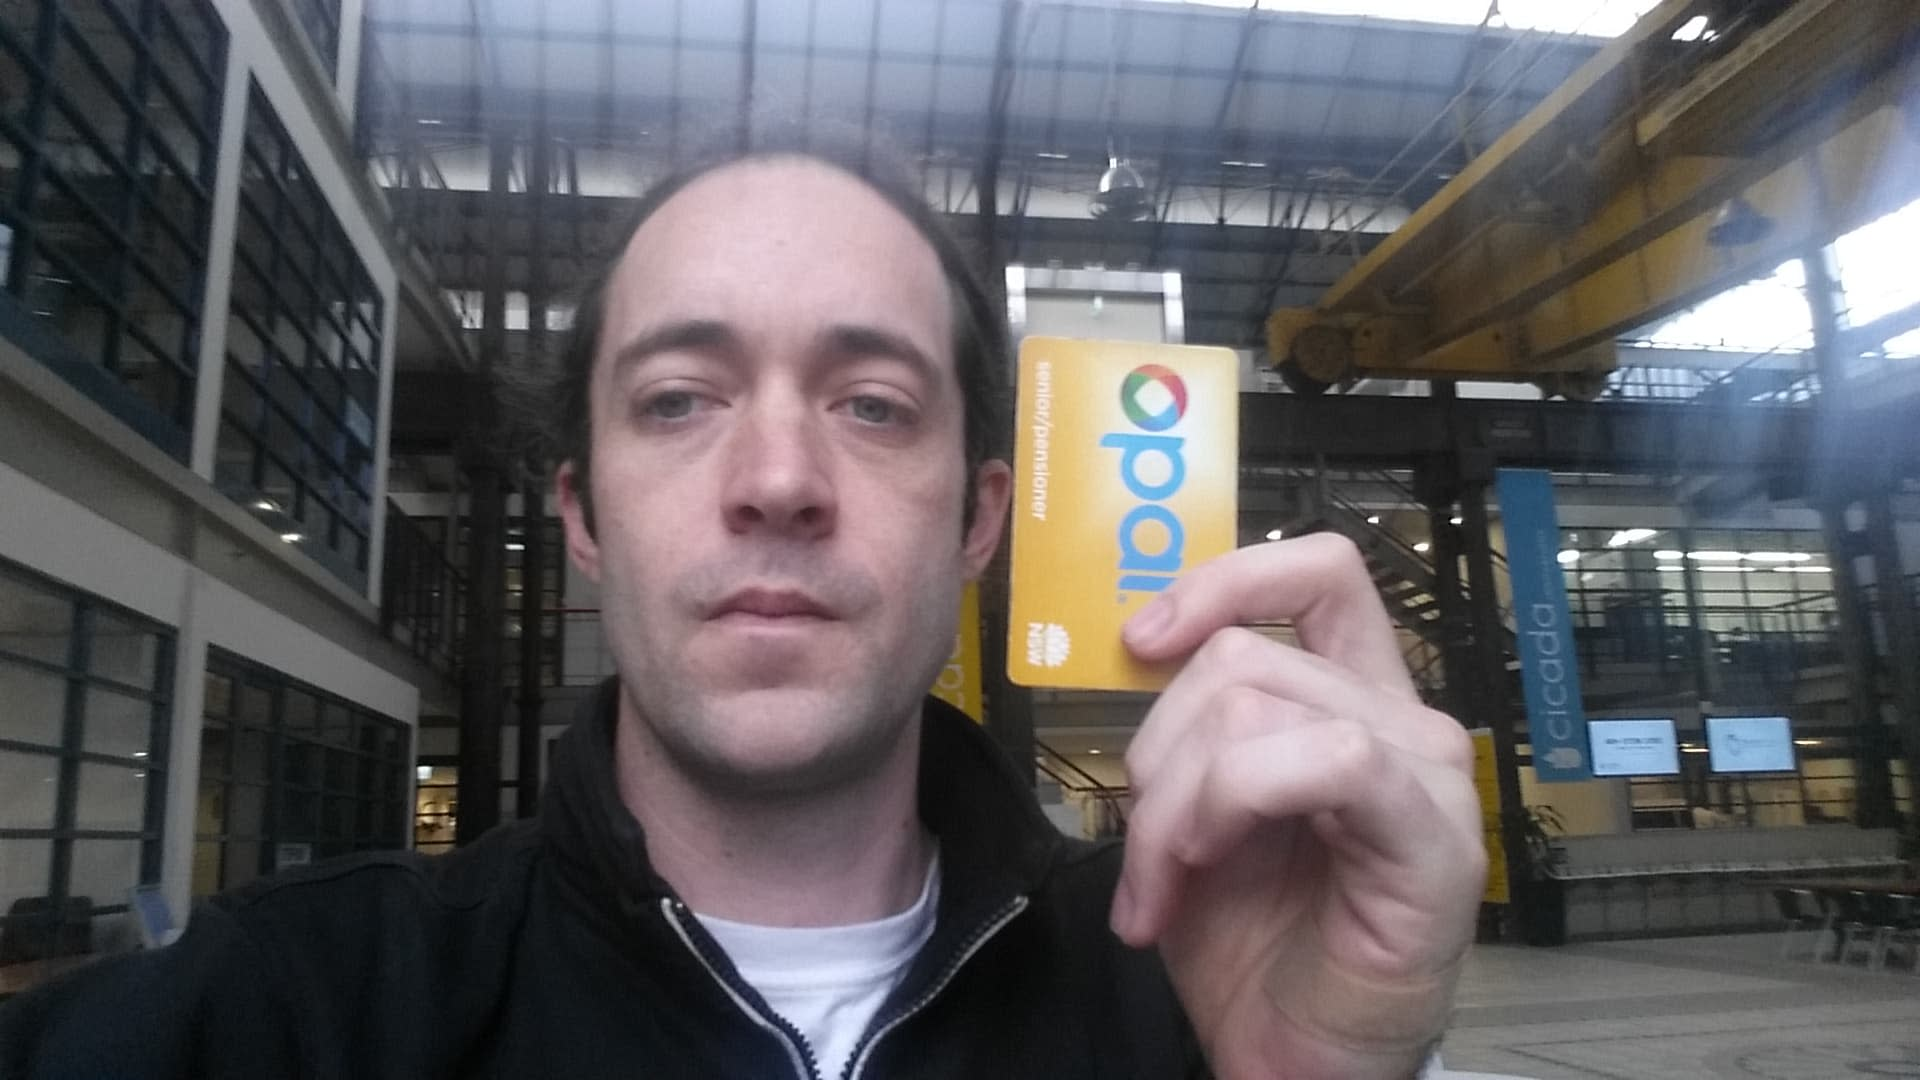 Australian Biohacker Who Implanted Opal Card In His Hand Convicted For Not Using Valid Ticket